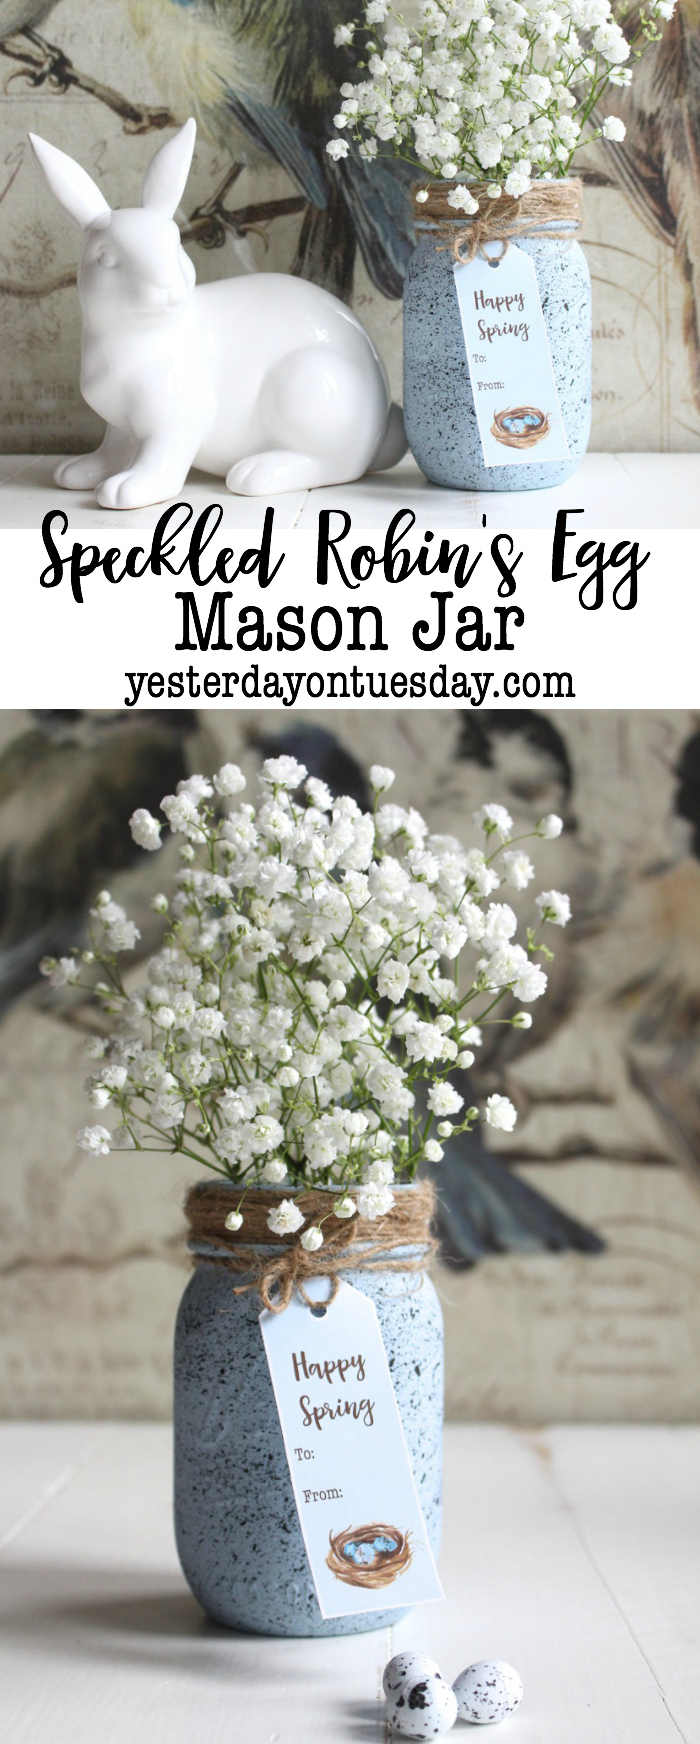 Speckled Robin's Egg Mason Jar | Yesterday On Tuesday